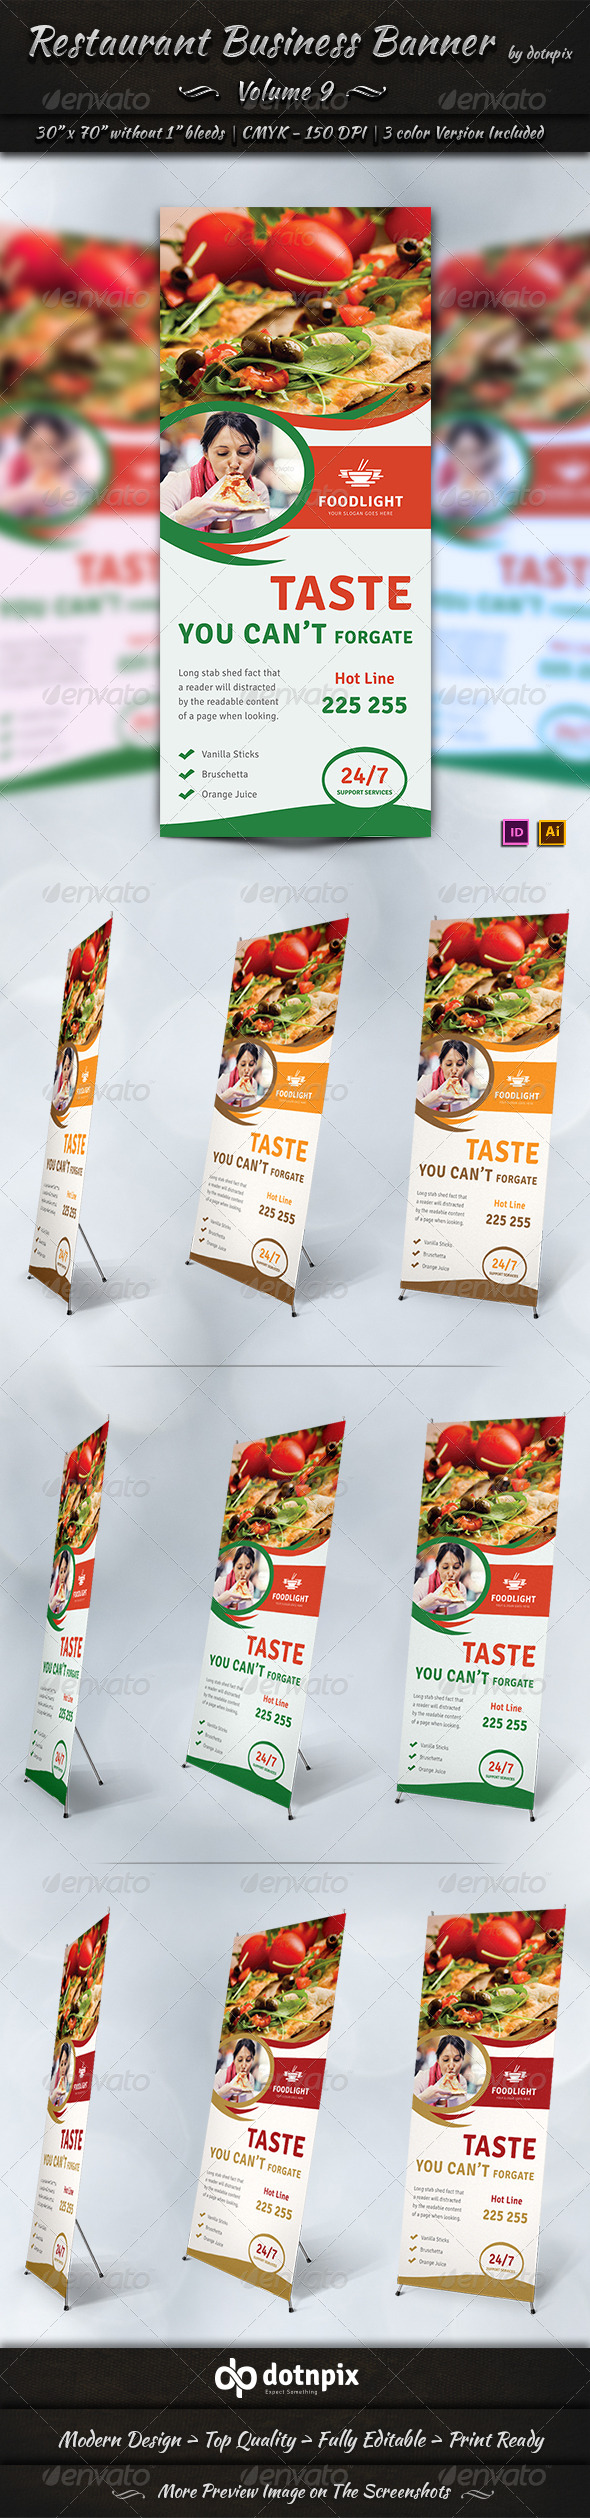 GraphicRiver Restaurant Business Banner Volume 9 7841227